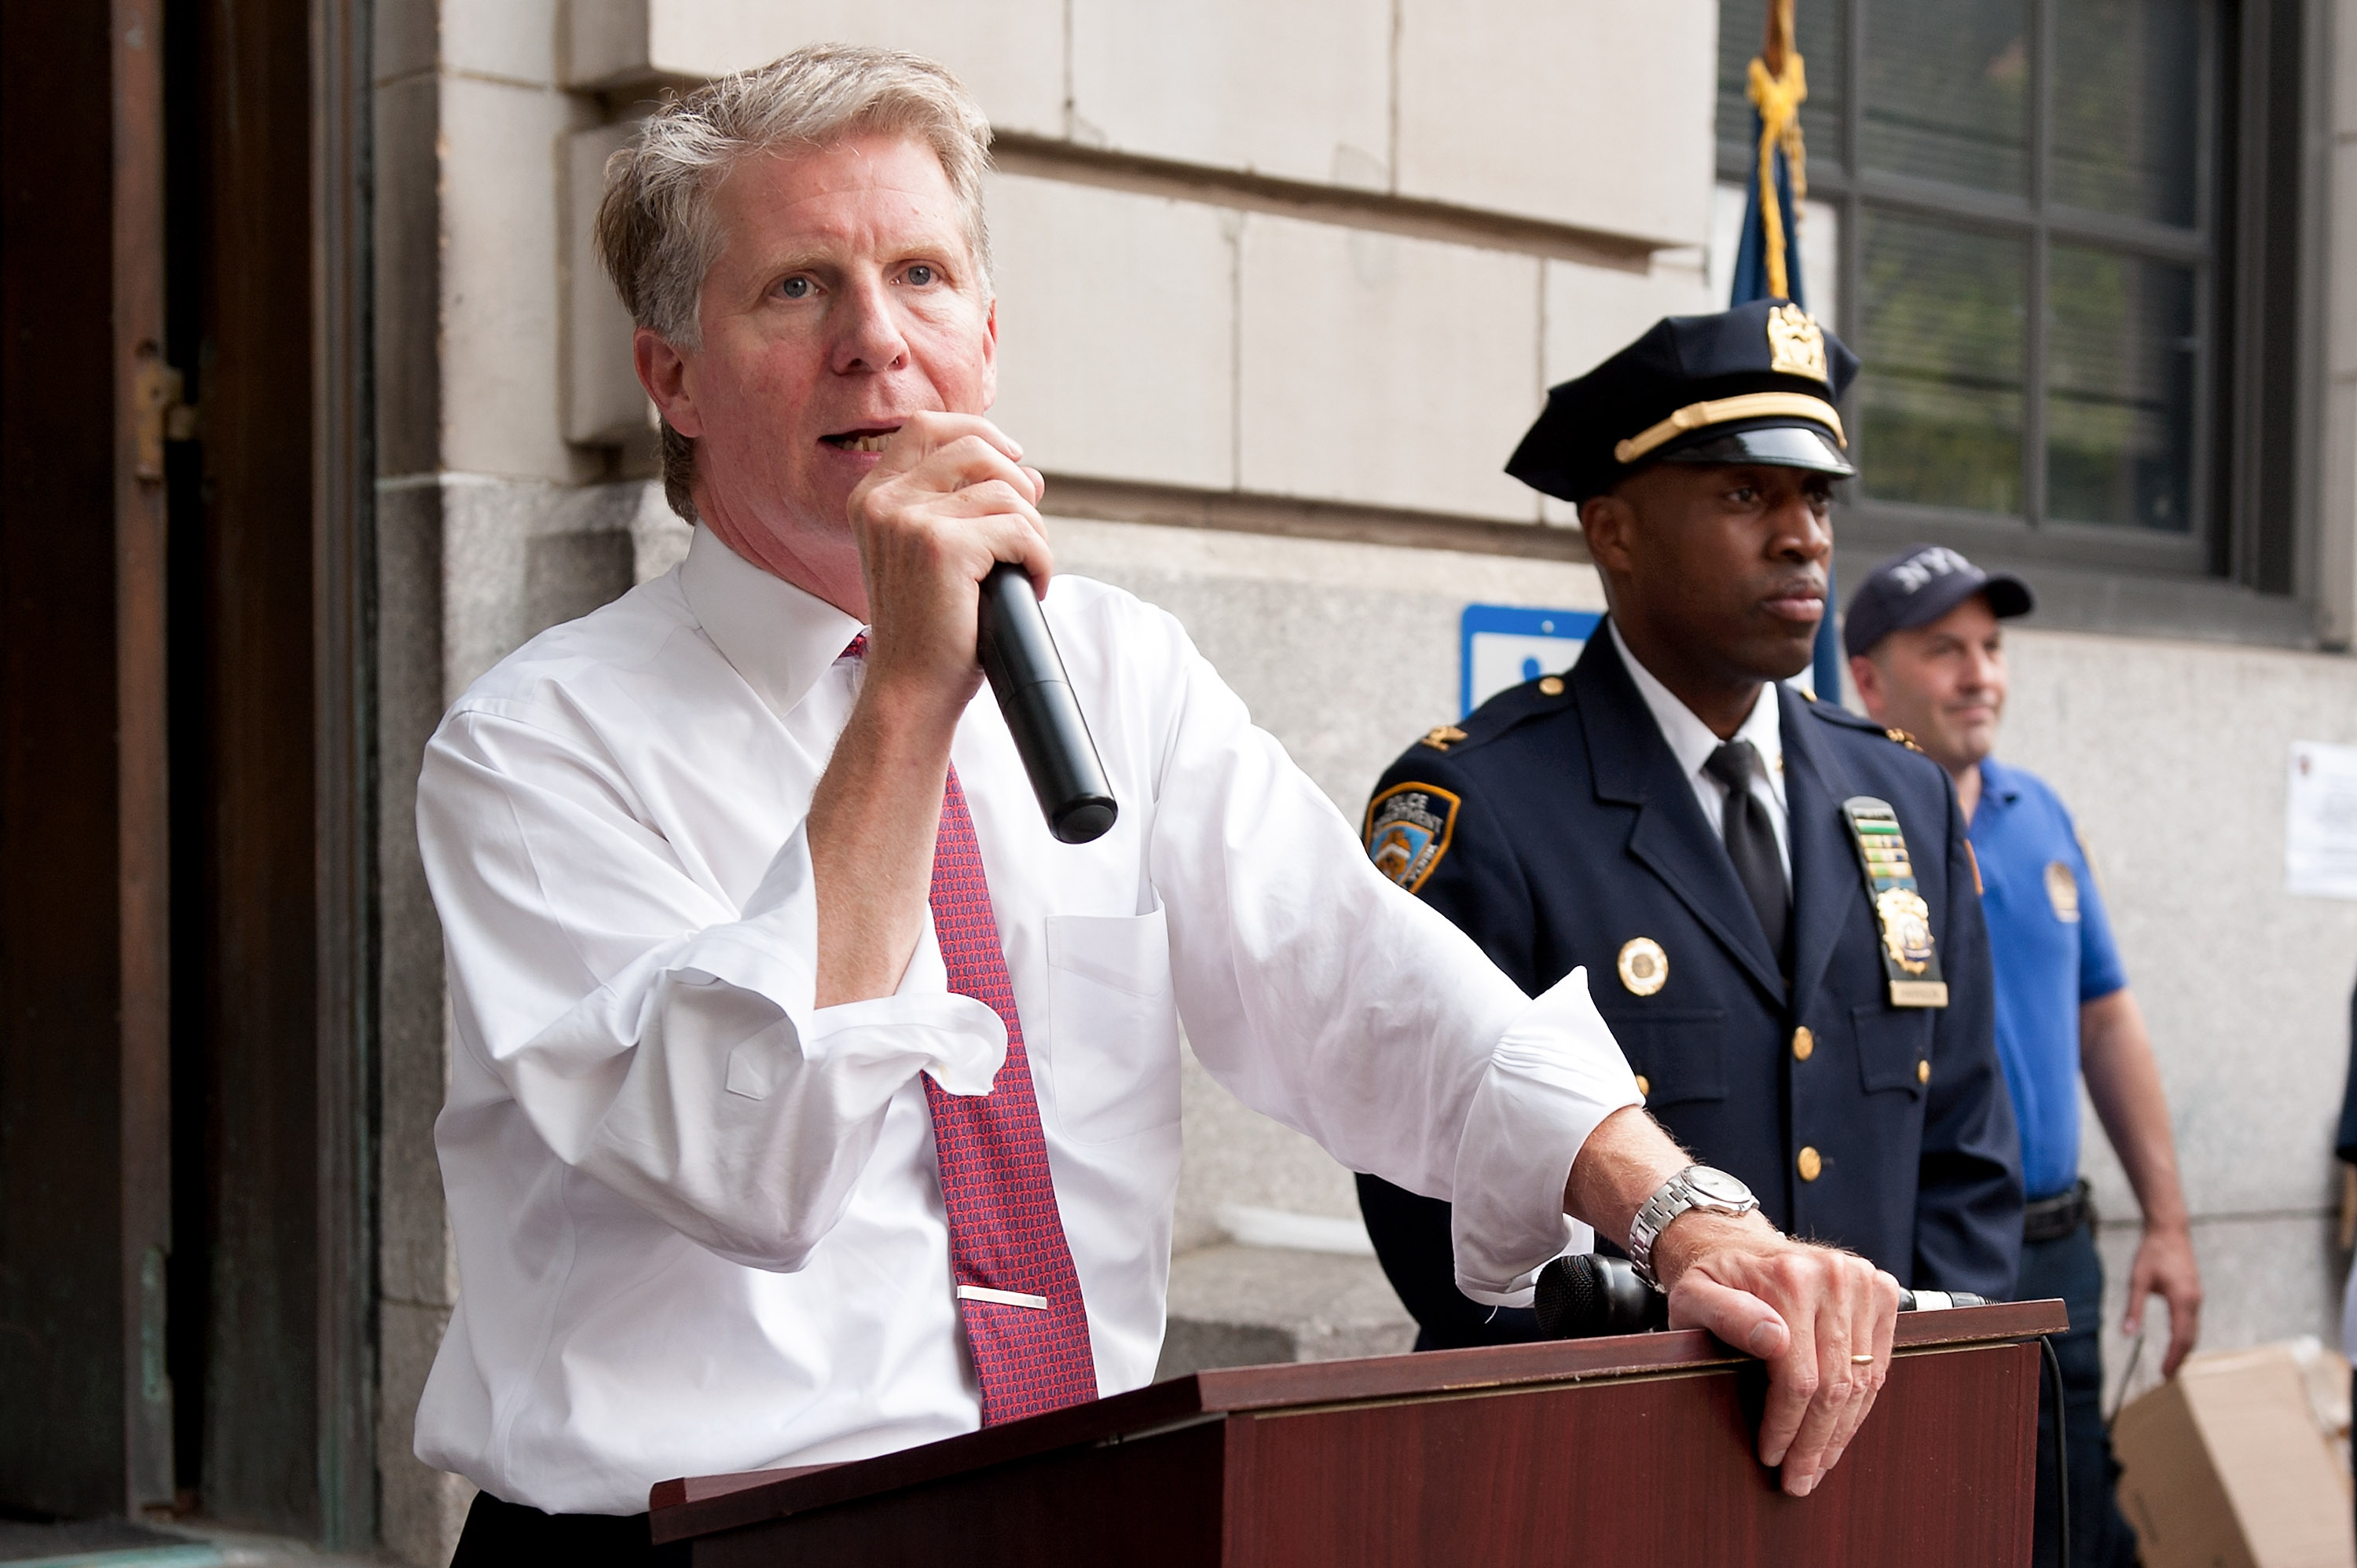 Manhattan District Attorney Cyrus R. Vance, Jr. attends National Night Out on the streets of Manhattan on August 7, 2012 in New York City.